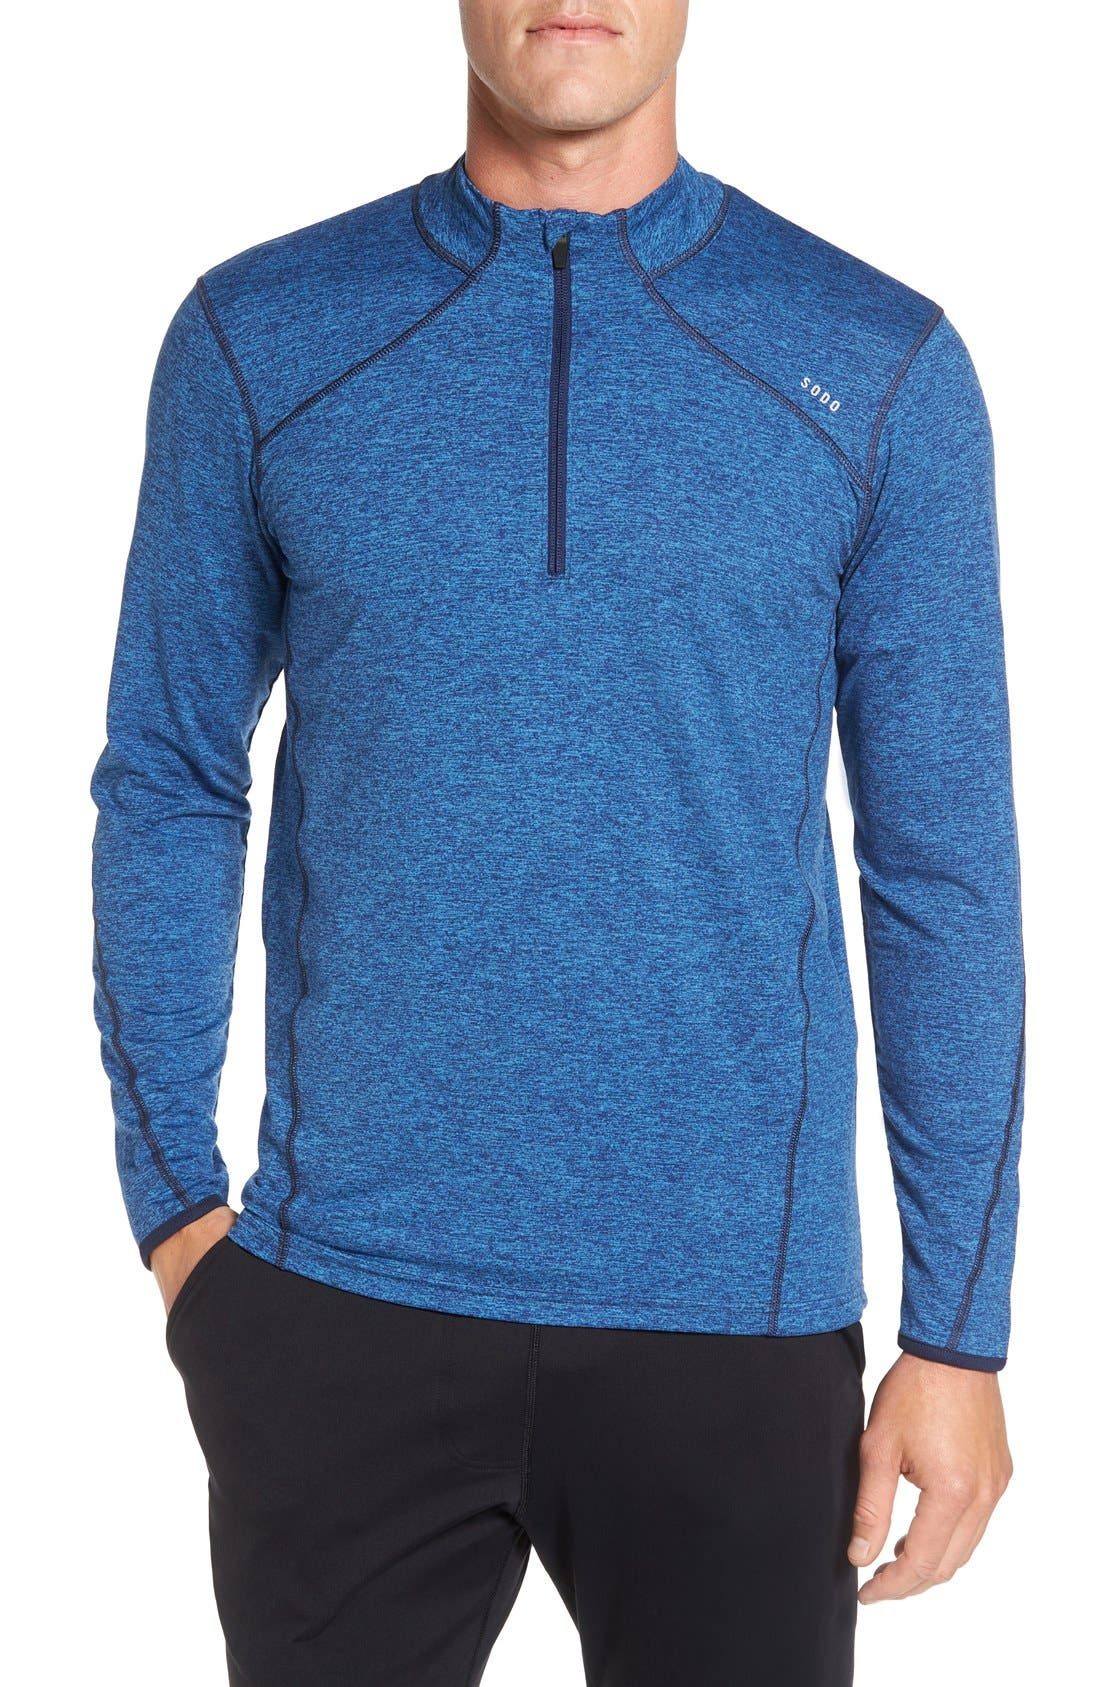 'Elevate' Moisture Wicking Stretch Quarter Zip Pullover,                         Main,                         color, Ocean Blue/ Navy